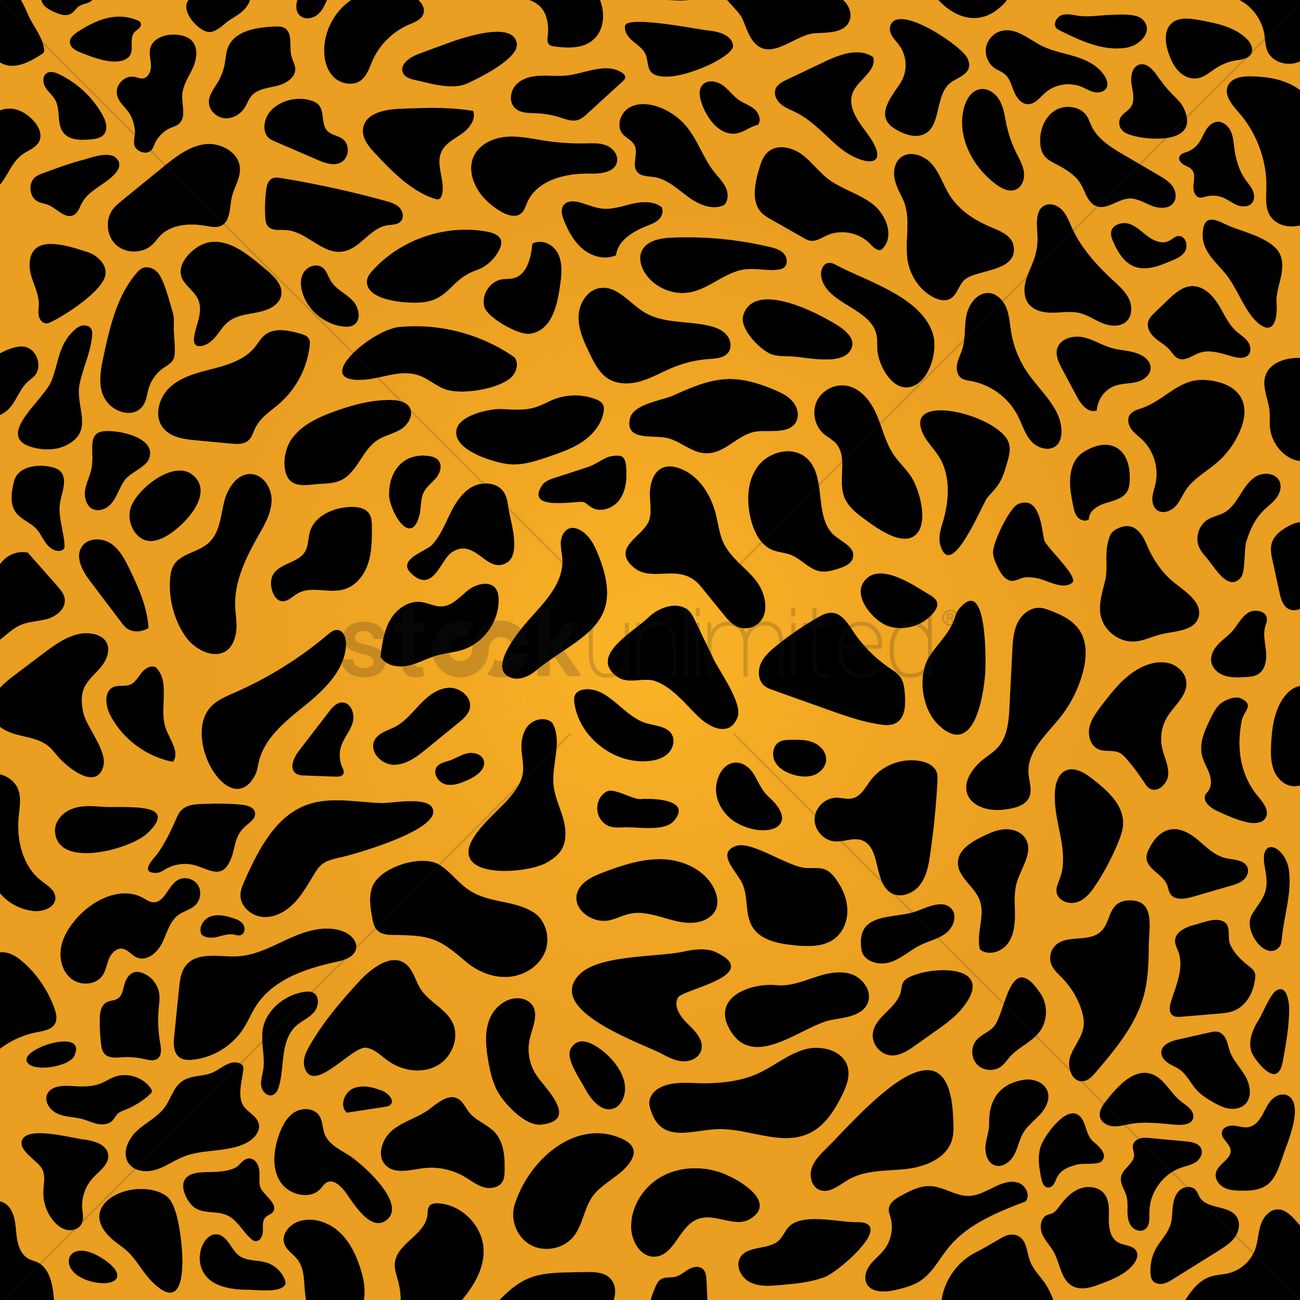 Cheetah texture background Vector Image - 1429941